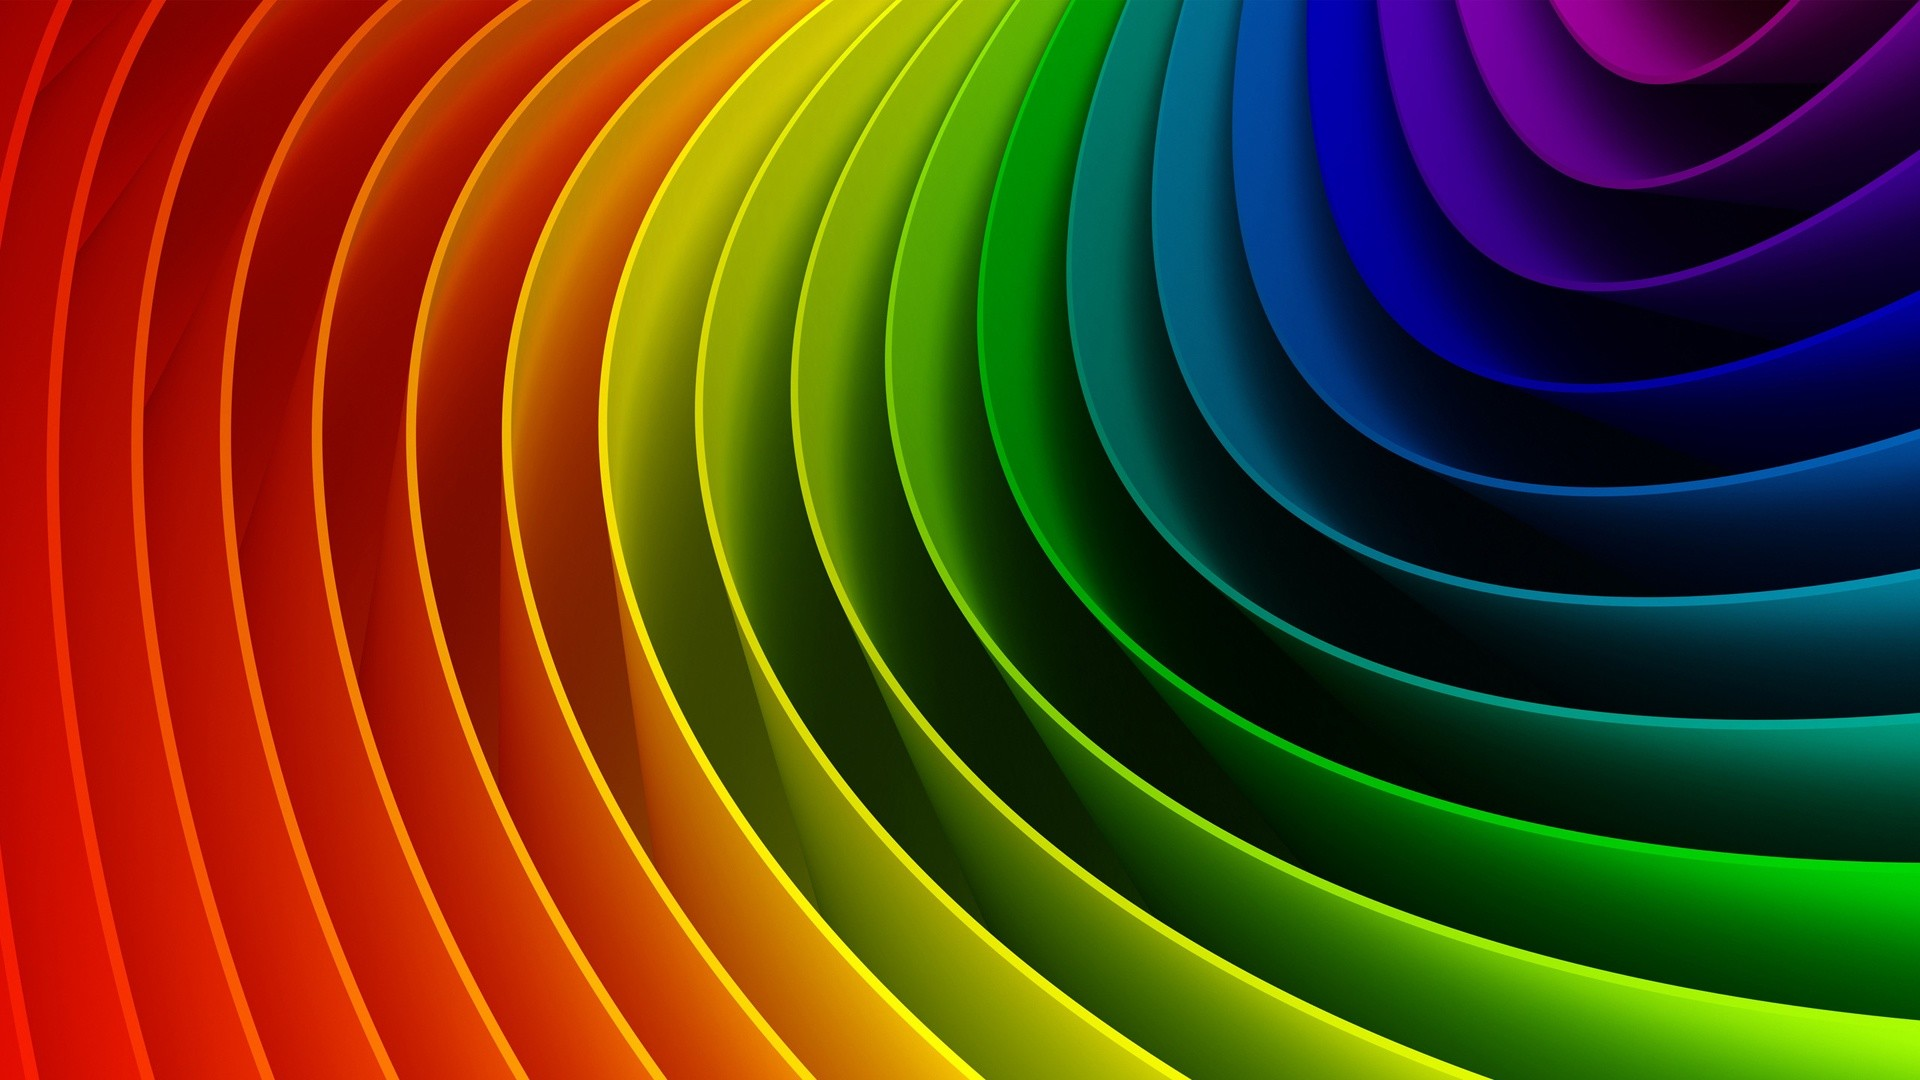 830023-gorgerous-cool-colorful-background-1920x1080-mobile